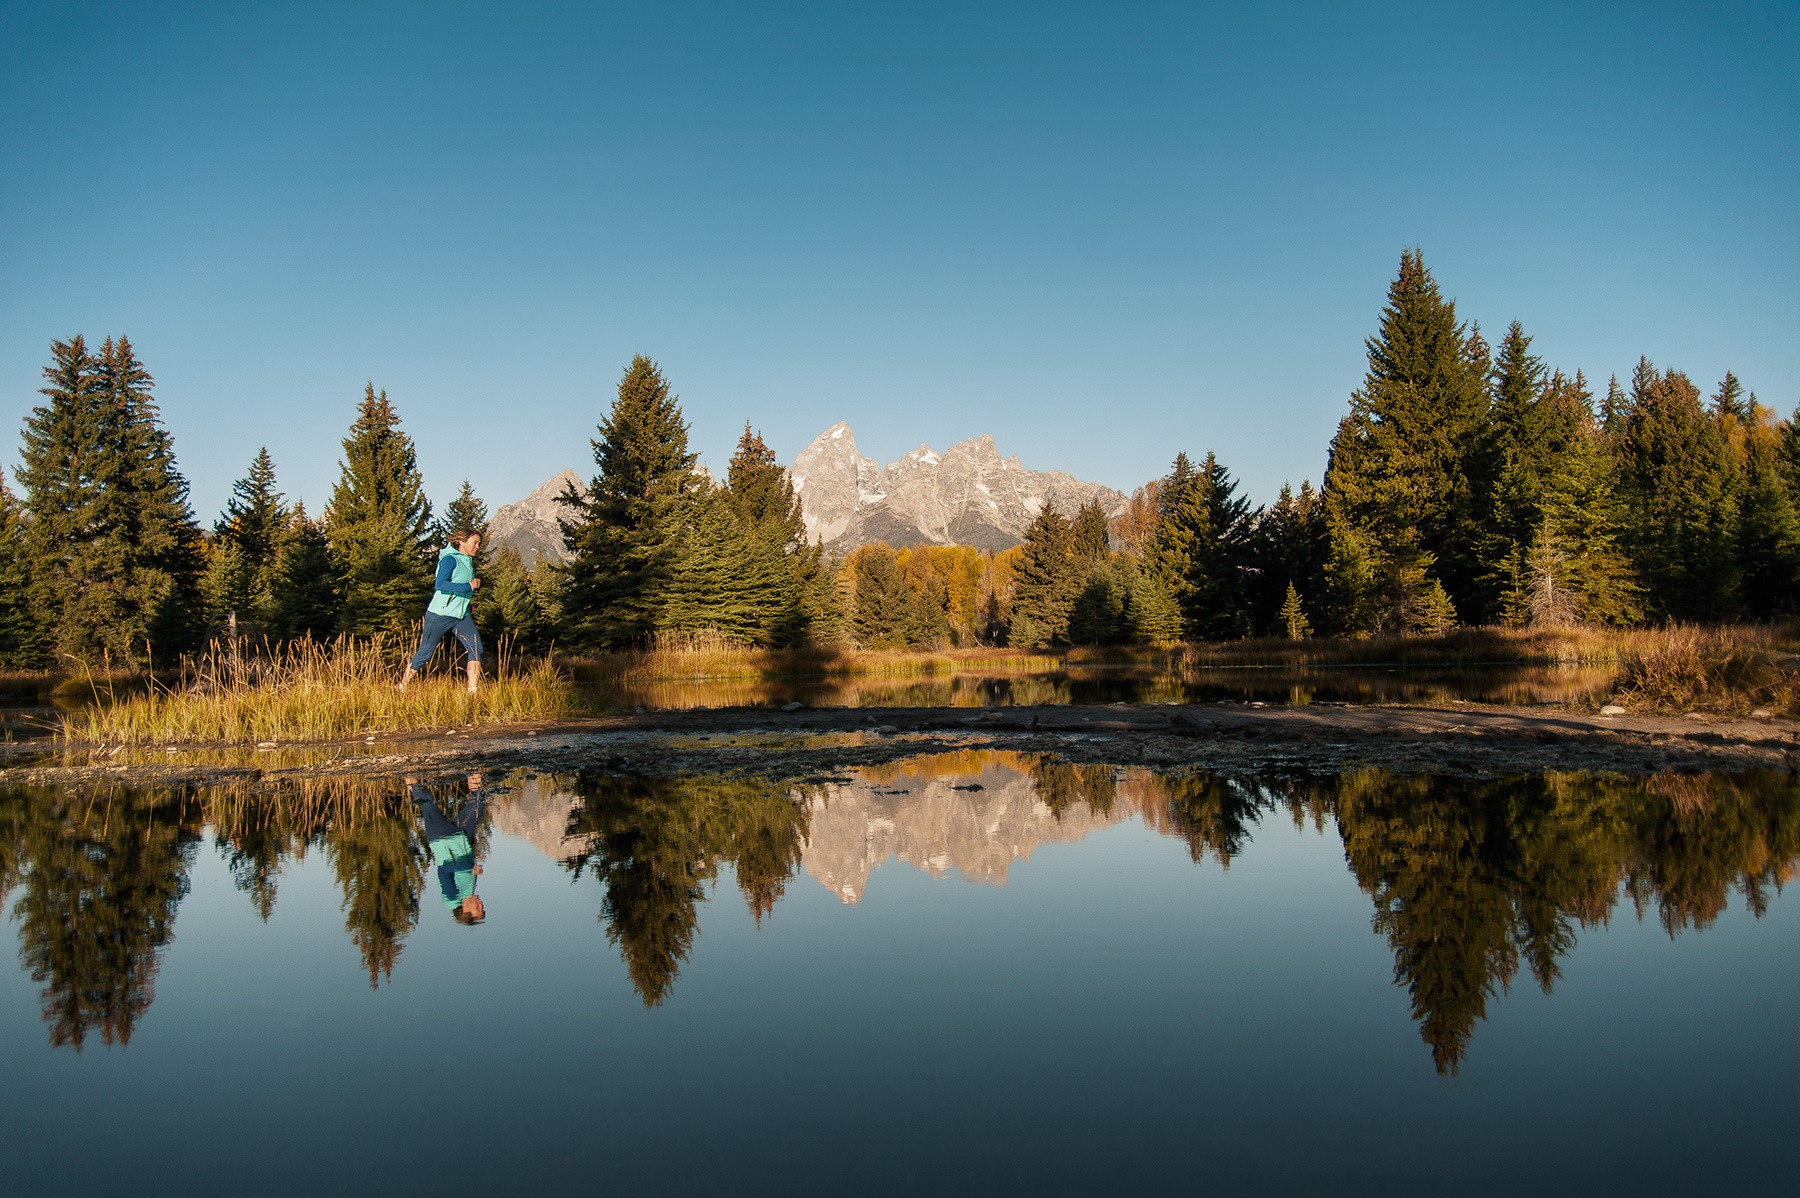 A female athlete enjoys an early run in front of the Grand Teton range